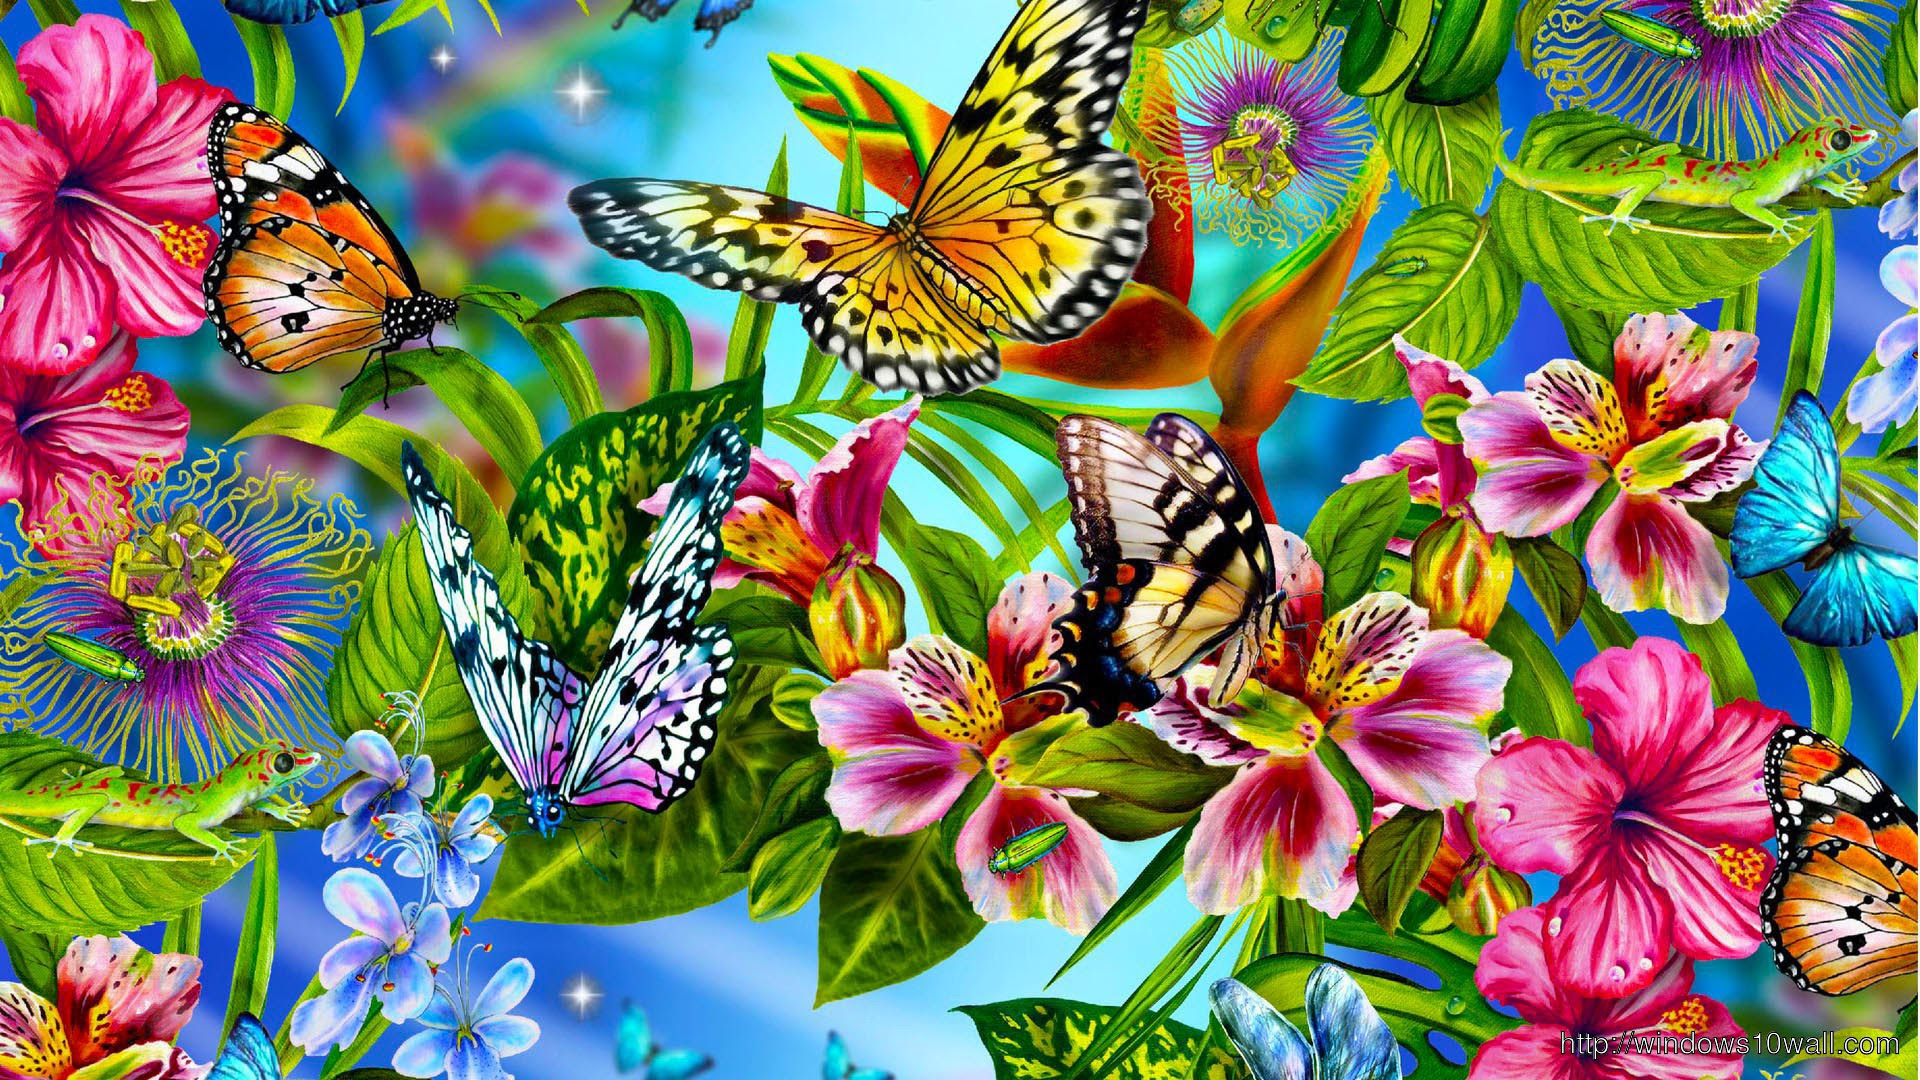 Butterfly Wallpaper To Download - windows 10 Wallpapers